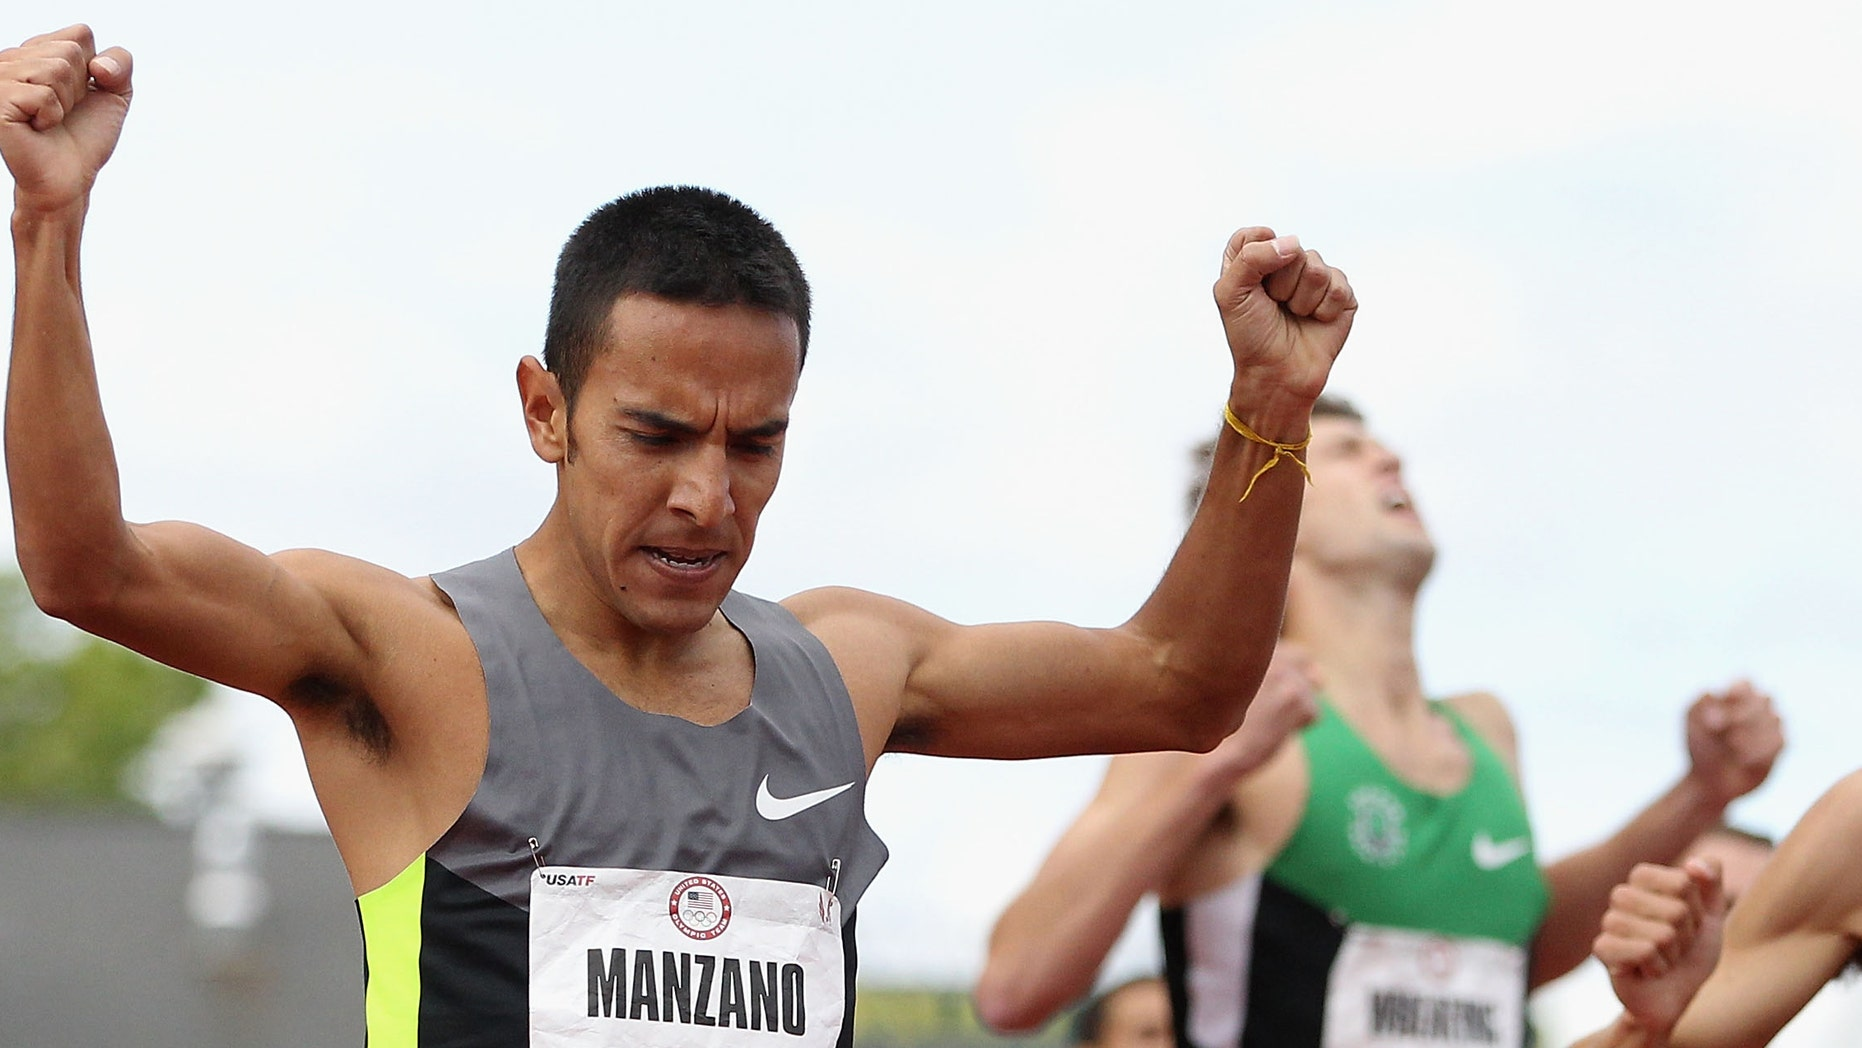 EUGENE, OR - JULY 01:  Leonel Manzano celebrates as he crosses the finish line to win the Men's 1500 Meter Run Final on day ten of the U.S. Olympic Track & Field Team Trials at the Hayward Field on July 1, 2012 in Eugene, Oregon.  (Photo by Christian Petersen/Getty Images)